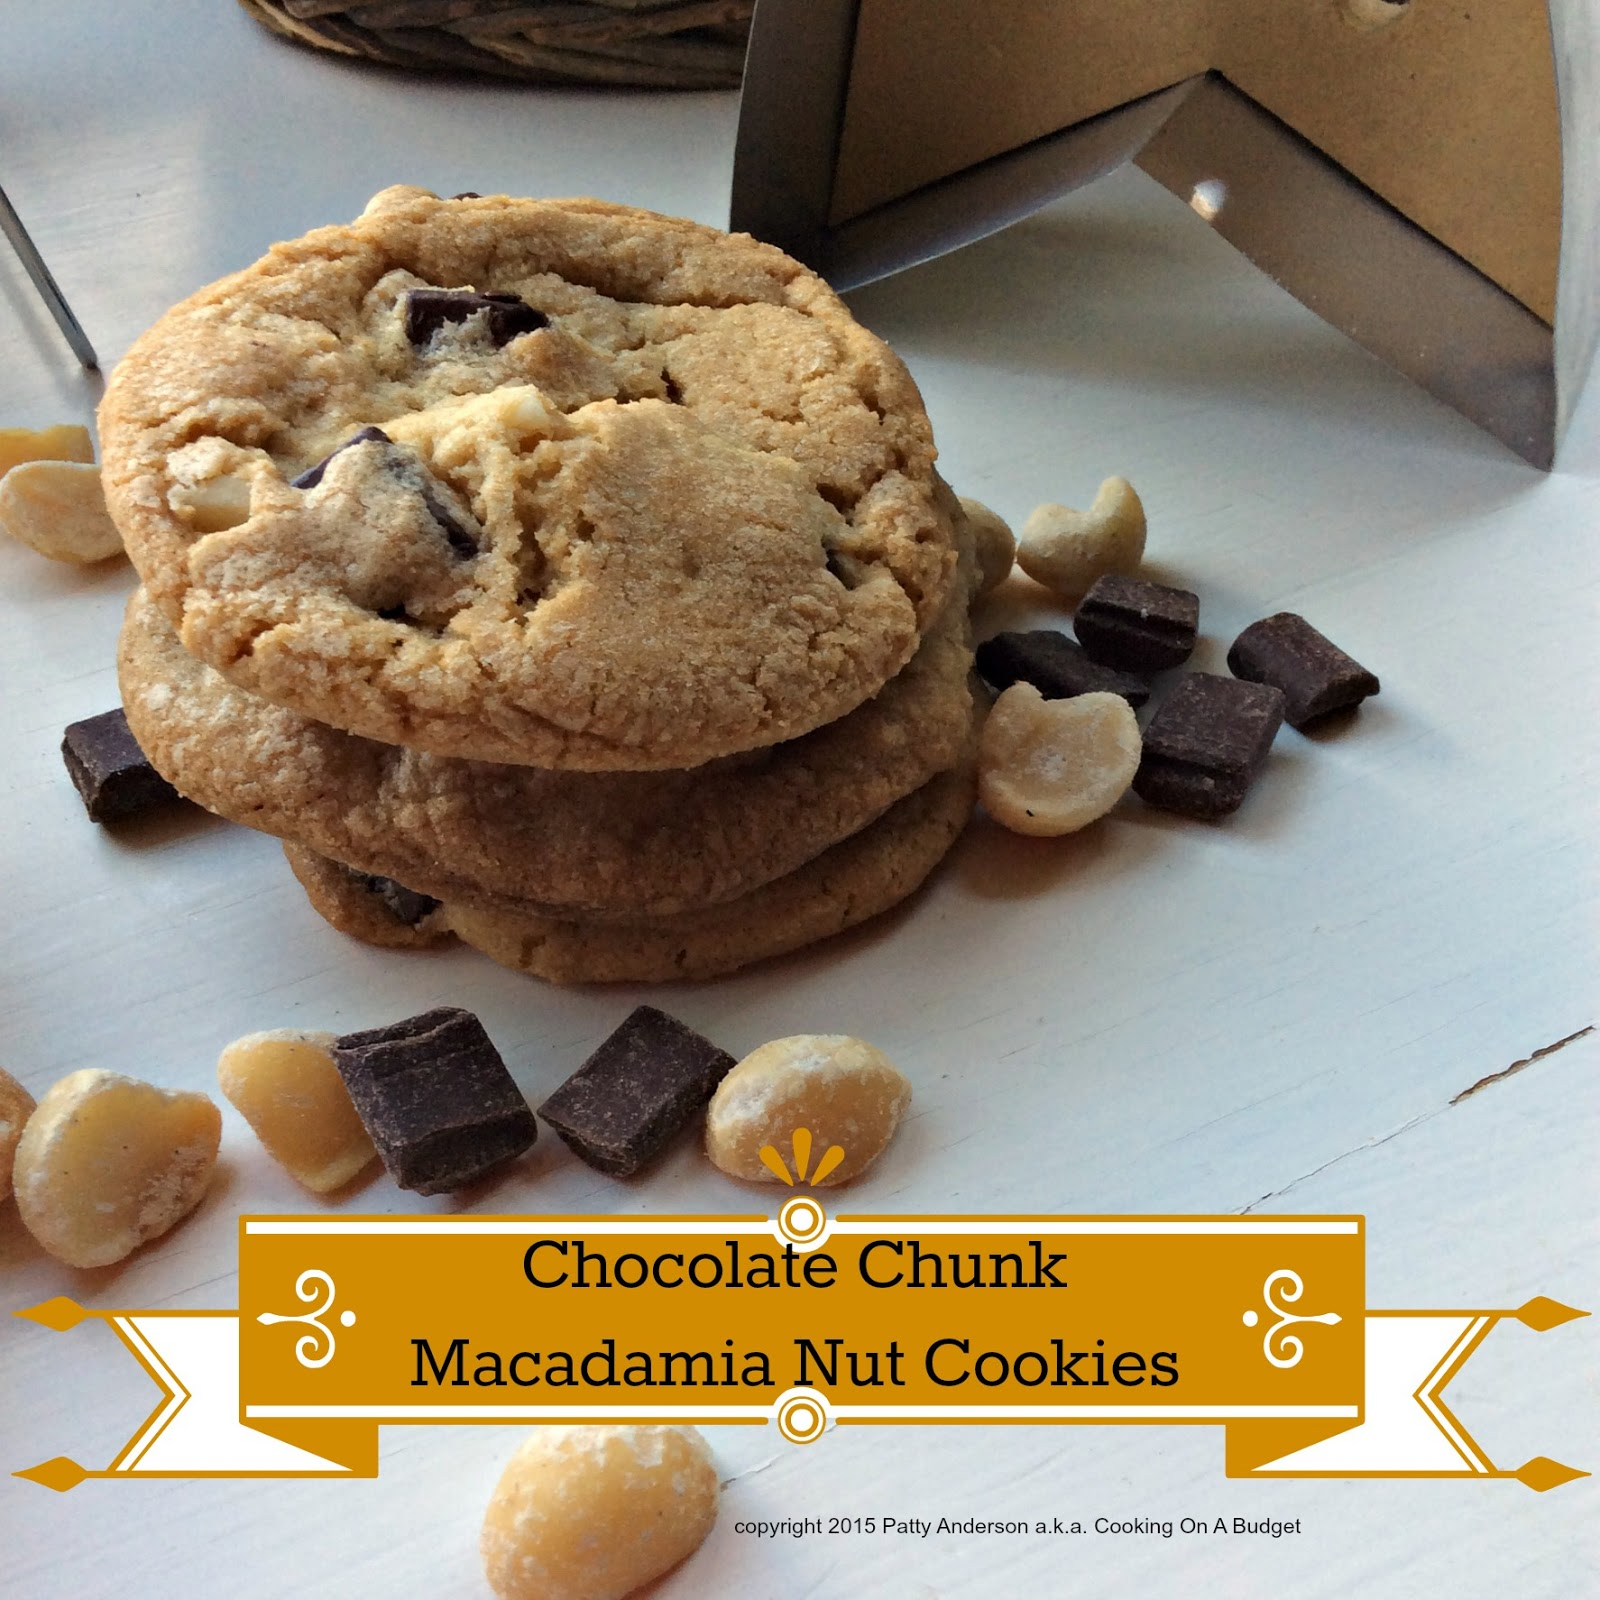 Cooking On A Budget: Chocolate Chunk Macadamia Nut Cookies